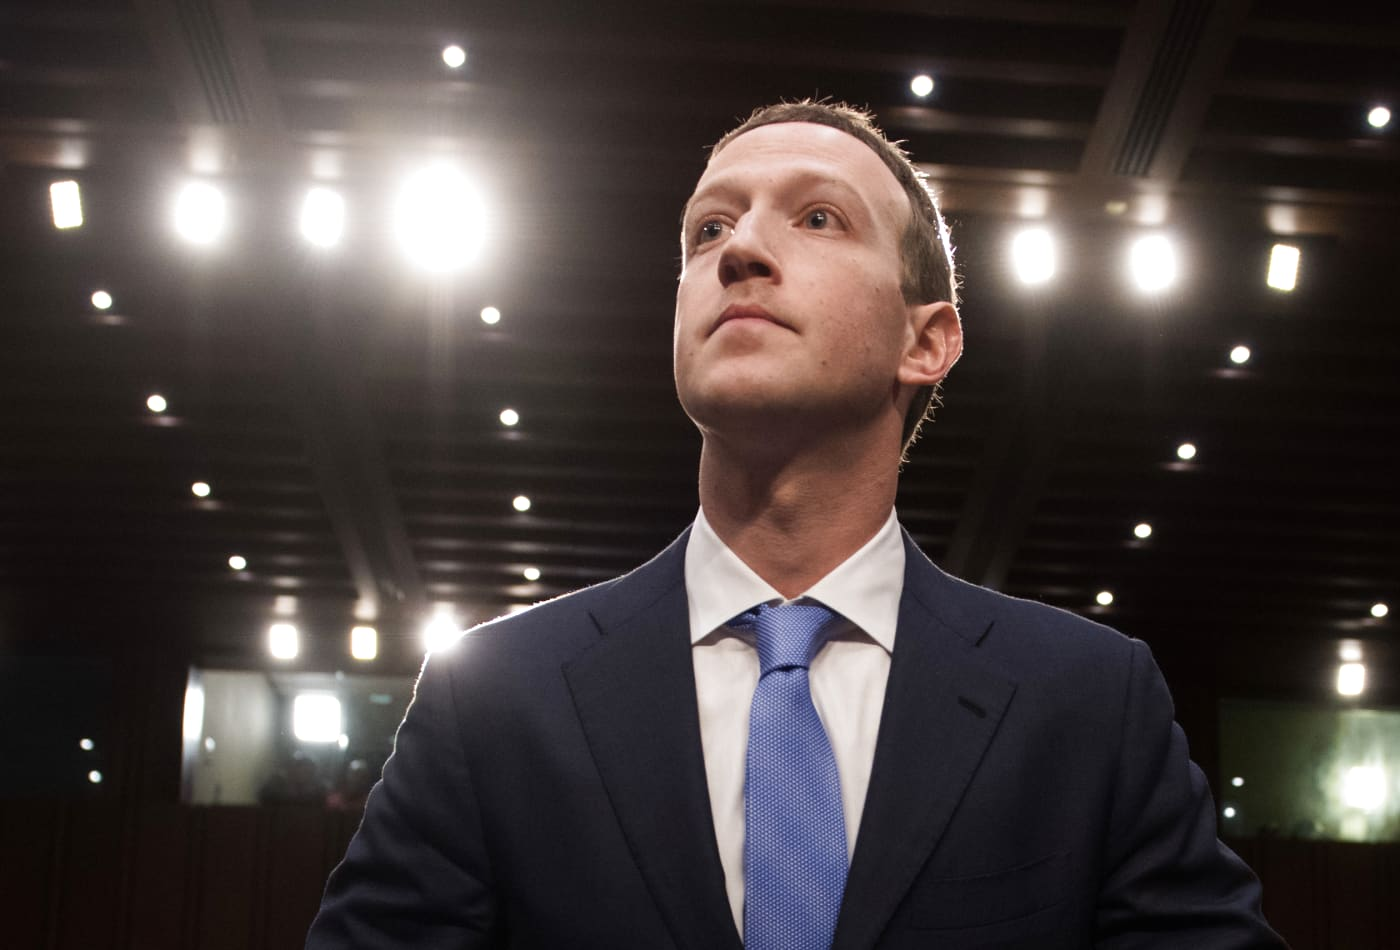 Mark Zuckerberg to testify before Congress on Facebook's libra cryptocurrency